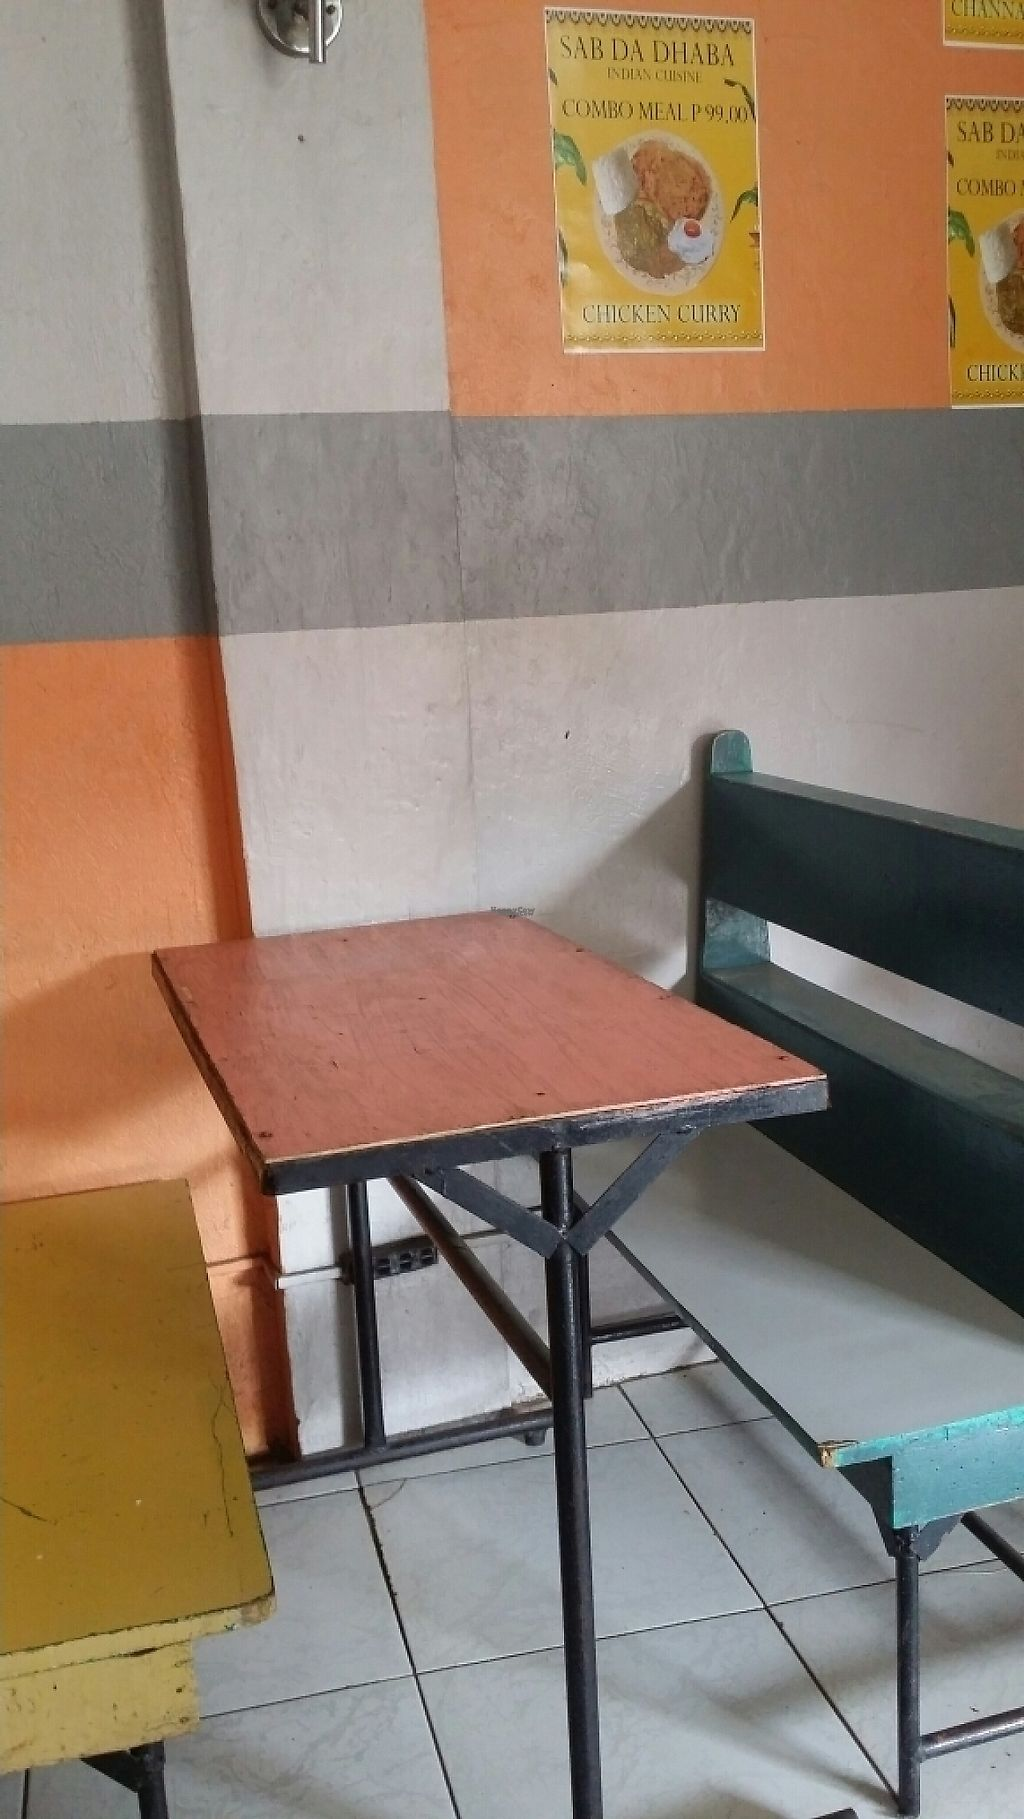 """Photo of Shiv Dal Roti Corner  by <a href=""""/members/profile/Mike%20Munsie"""">Mike Munsie</a> <br/>inside seating <br/> February 2, 2017  - <a href='/contact/abuse/image/30144/220743'>Report</a>"""